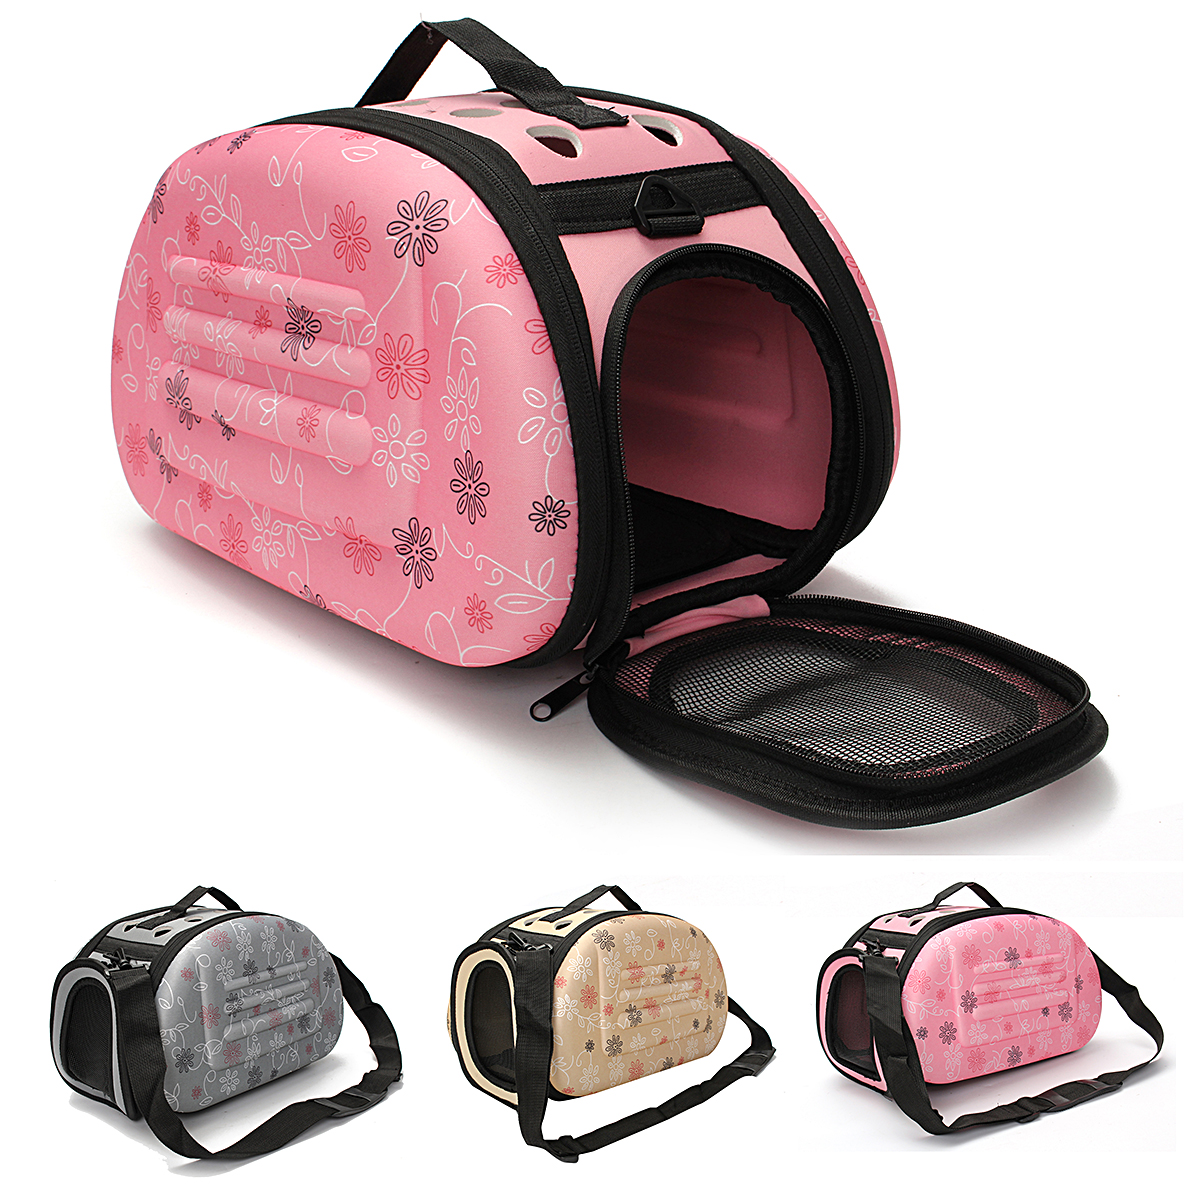 Pet Carriers For Dog Amp Cat,portable Pet Small Dog Cat